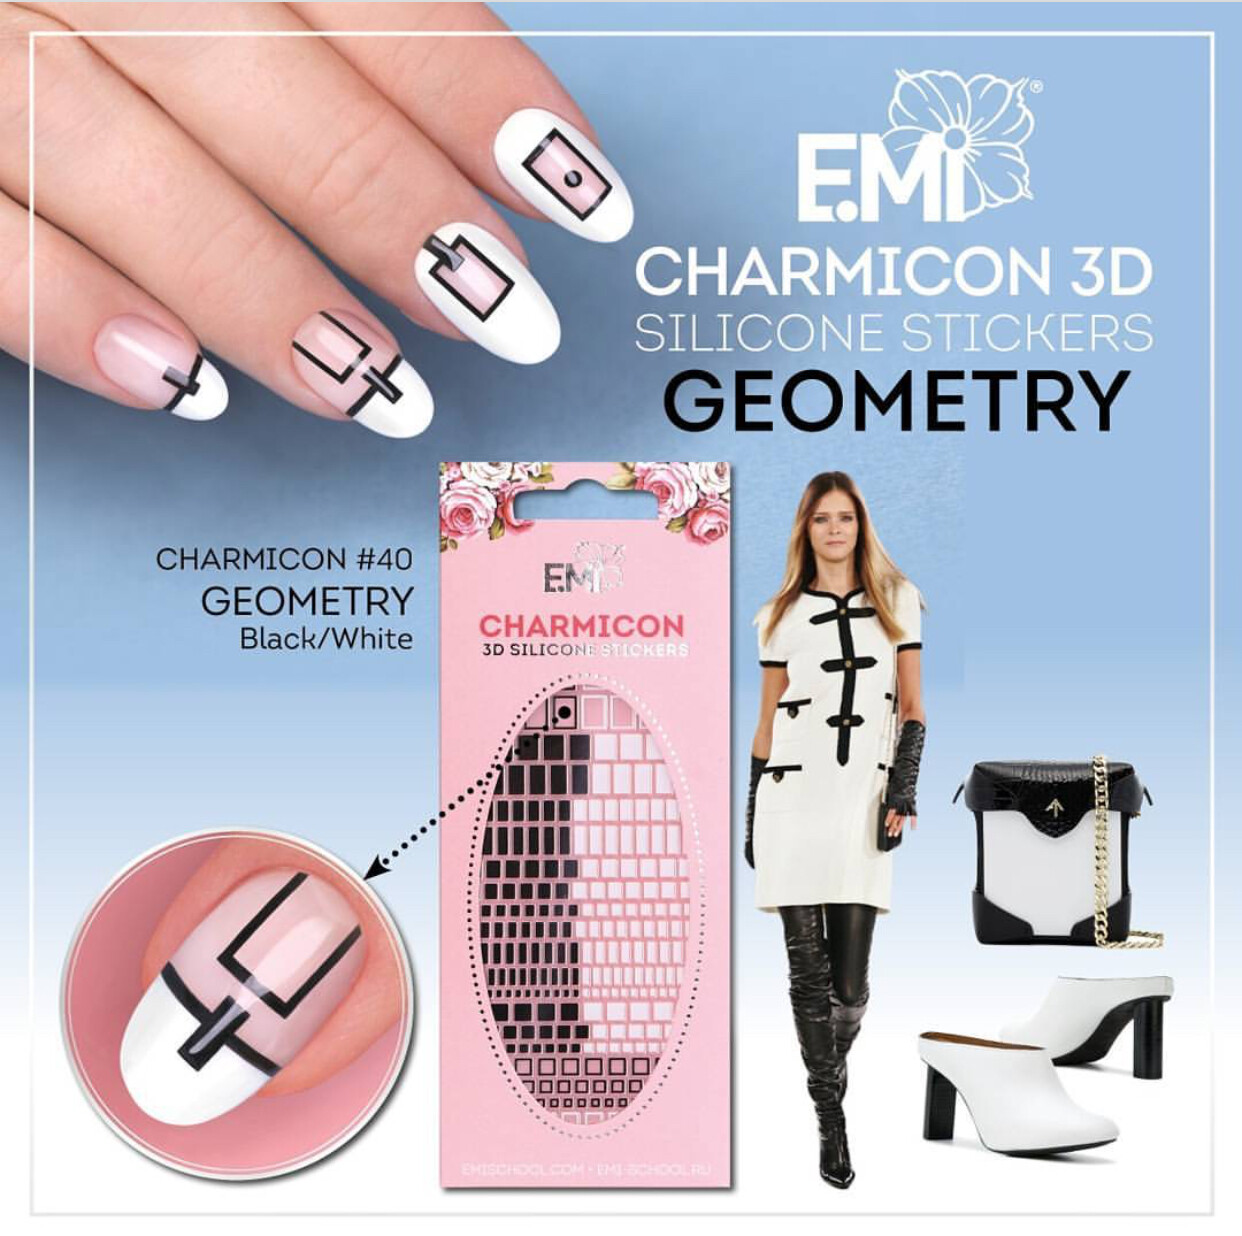 Charmicon Silicone Stickers #40 Geometry Black/White